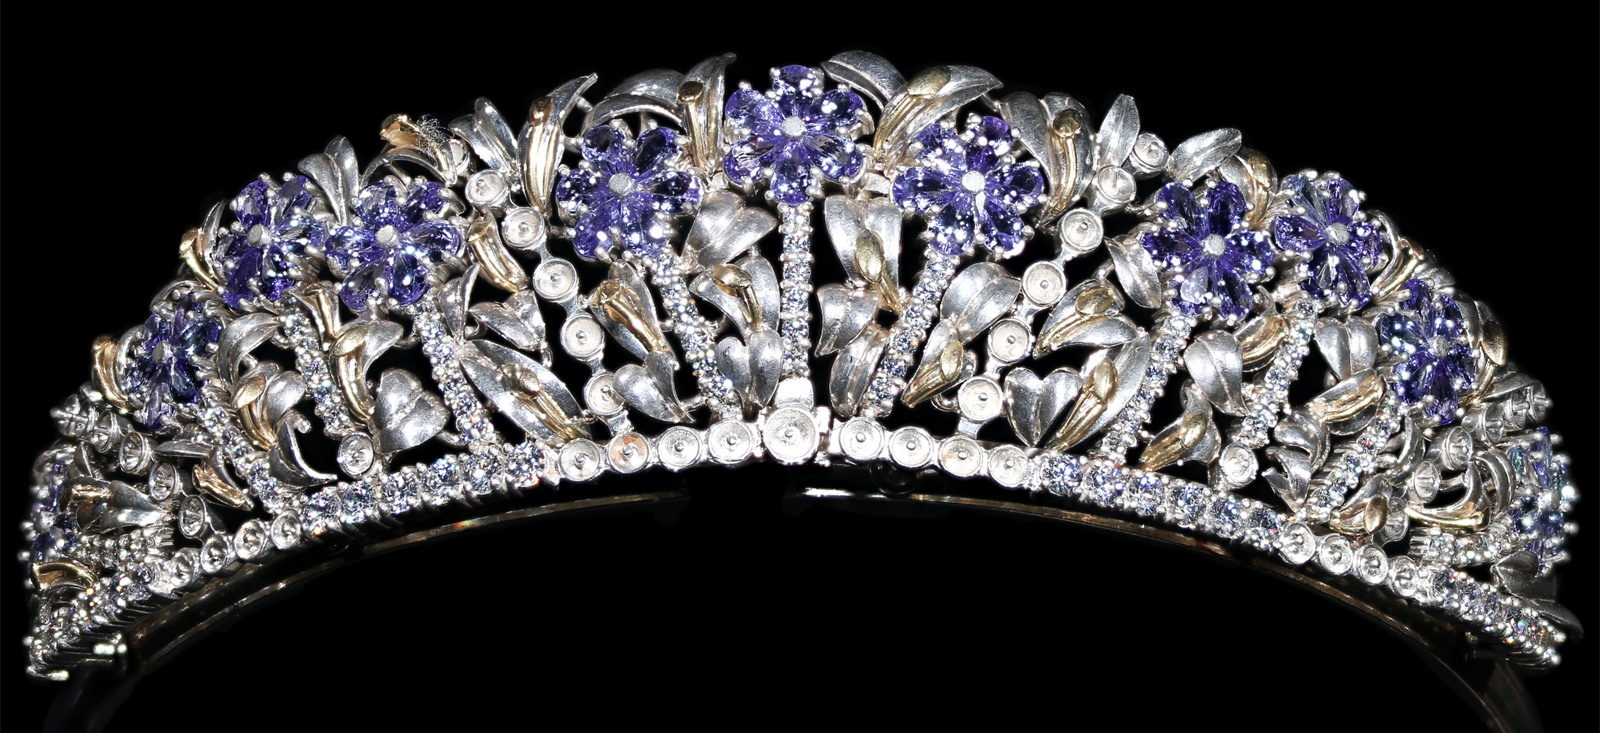 The alexandra Tanzanite with Diamond Tiara in hallmarked 18ct Gold and Silver